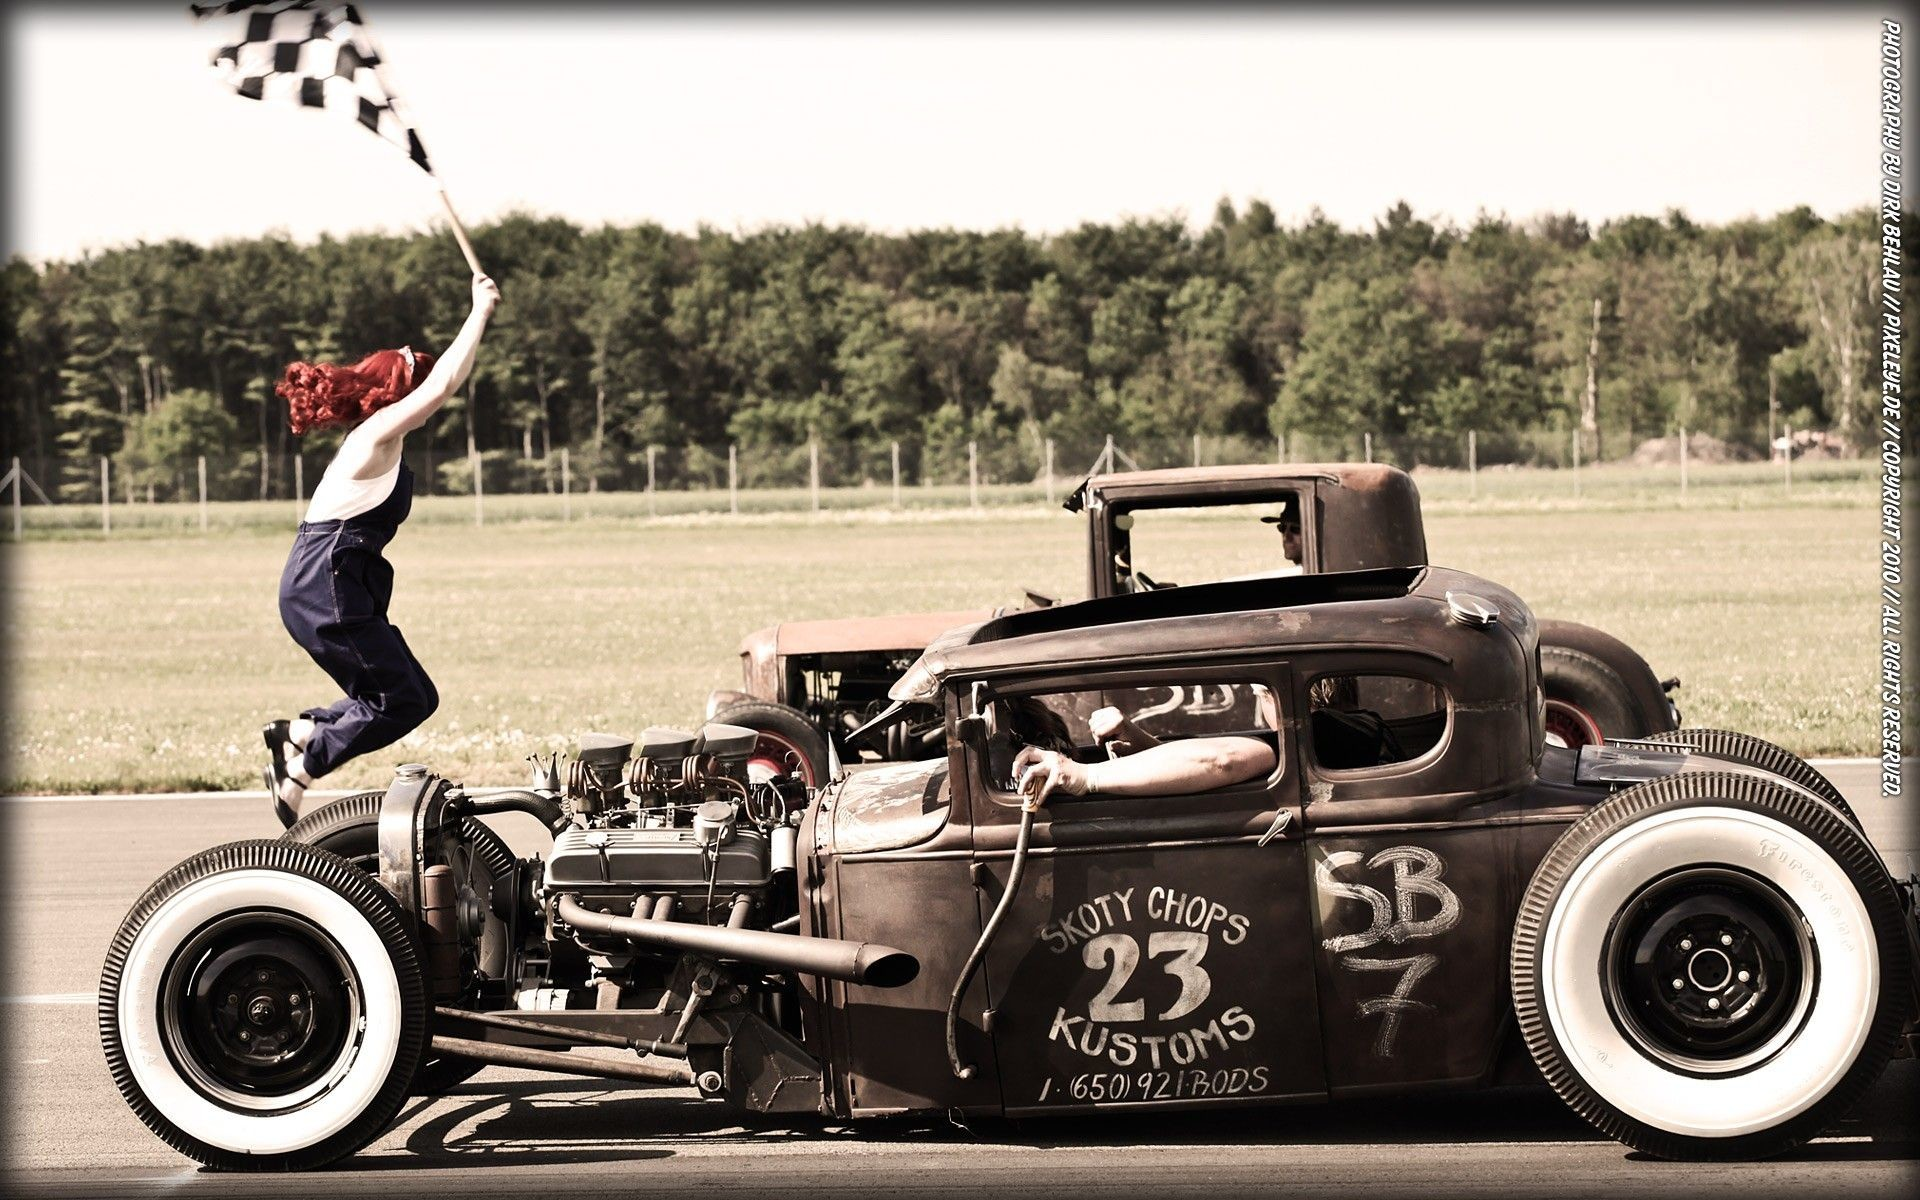 Res: 1920x1200, drag racing wallpaper | Hot rod rat rod drag racing coupe wallpaper  background